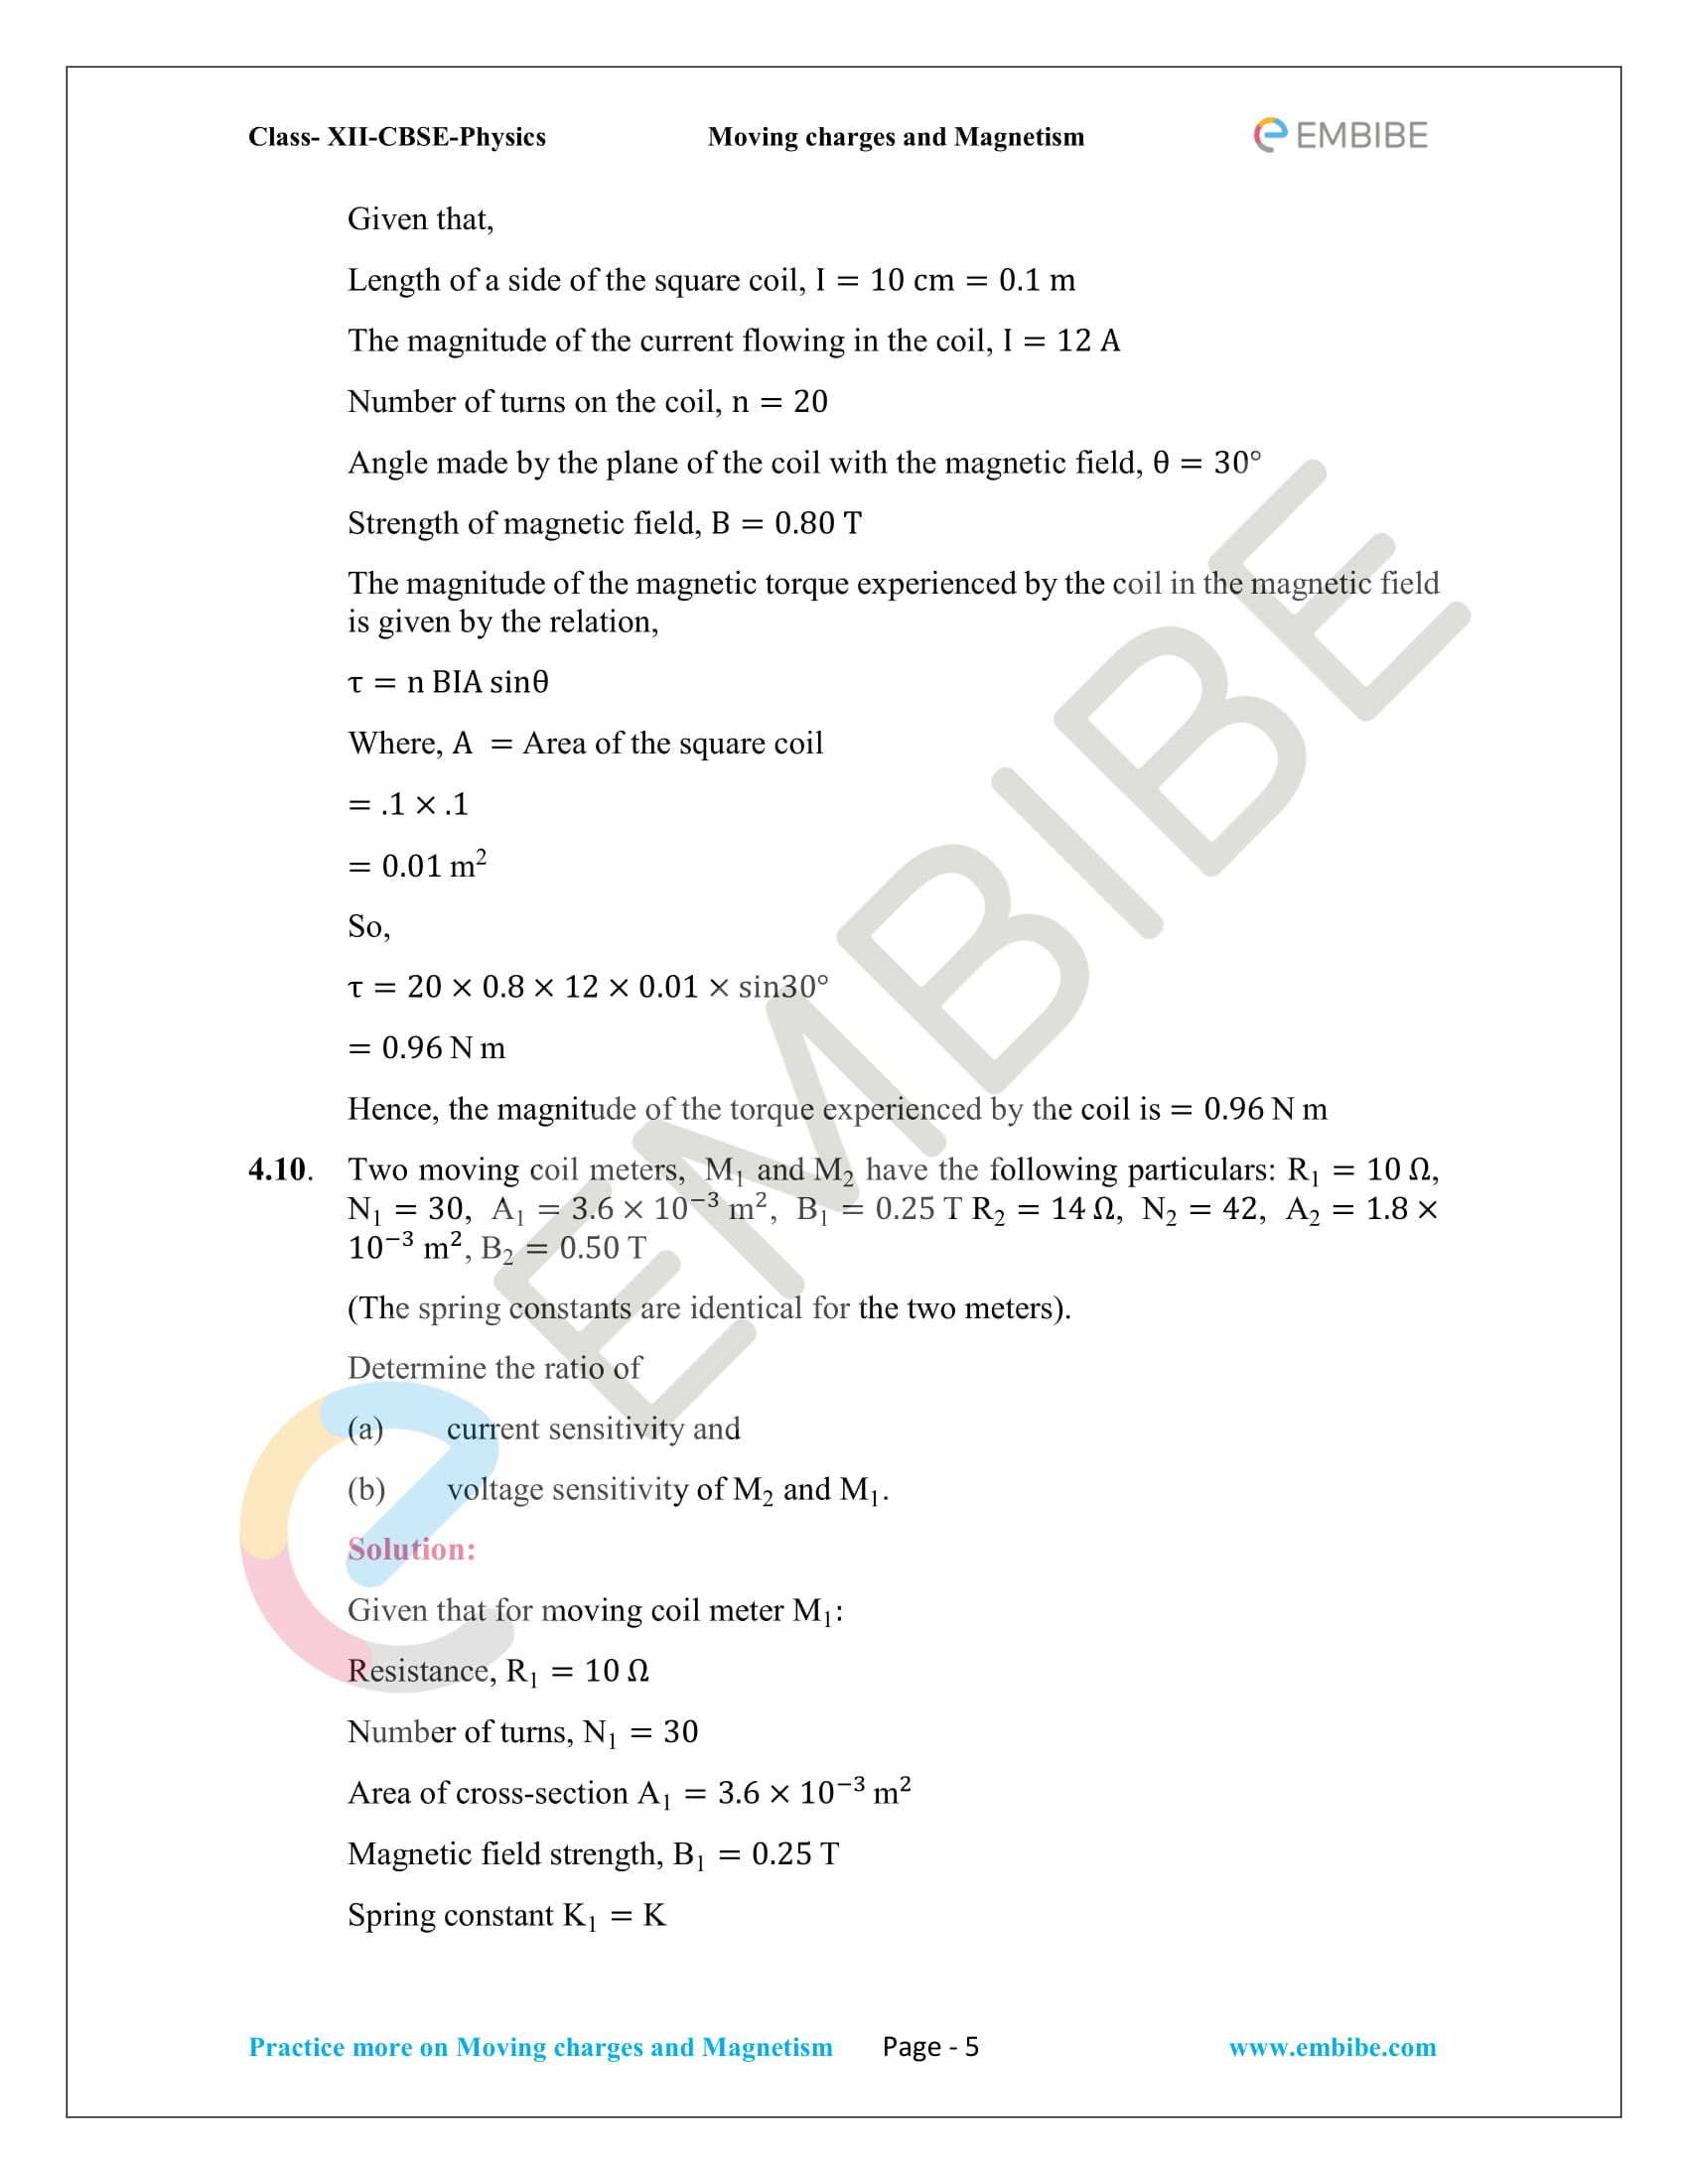 NCERT_Grade 12_Physics_Ch_04_Moving Charges and Magnetism-05